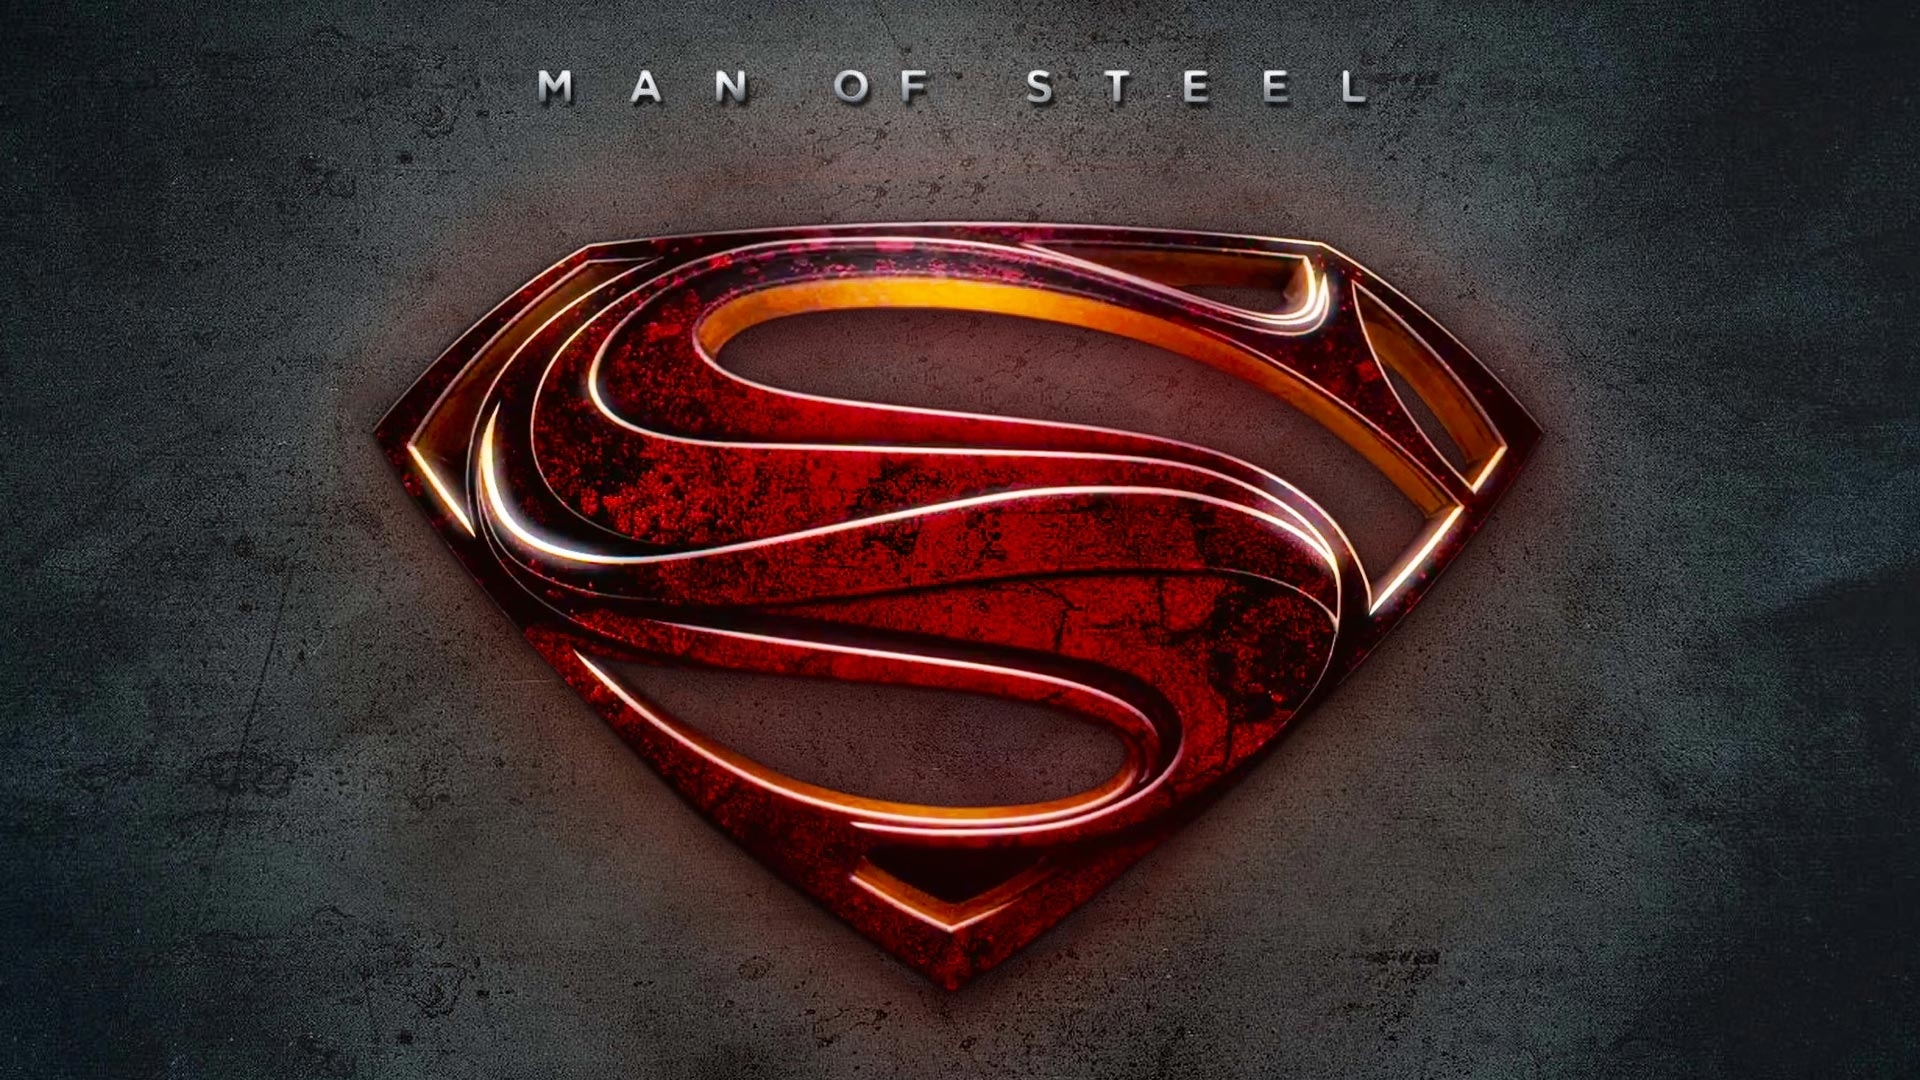 man of steel logo google covers - google plus covers photos